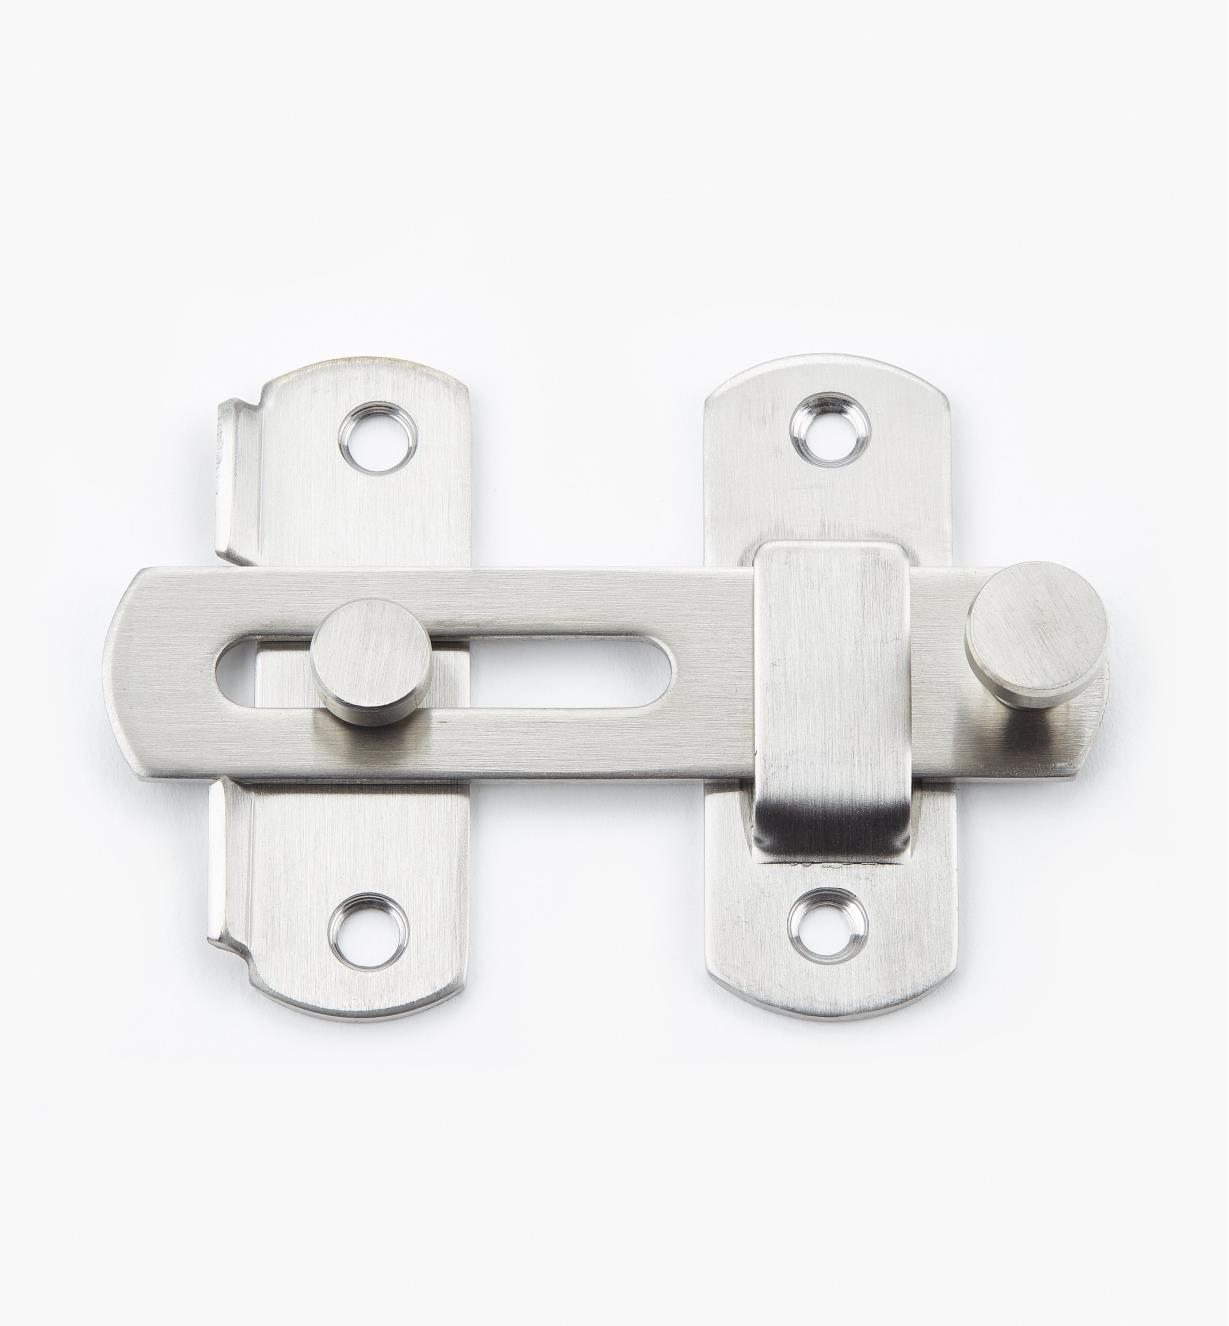 01W6321 - Large Stainless-Steel Shutter Latch